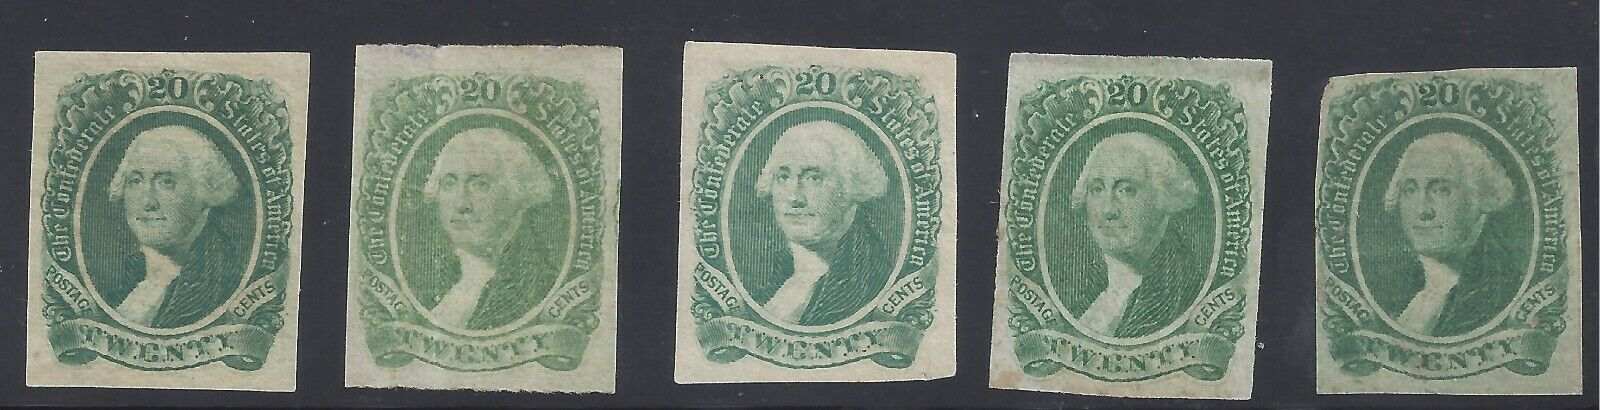 CSA 13 Group Of 5 Stamps Unused - $64.64